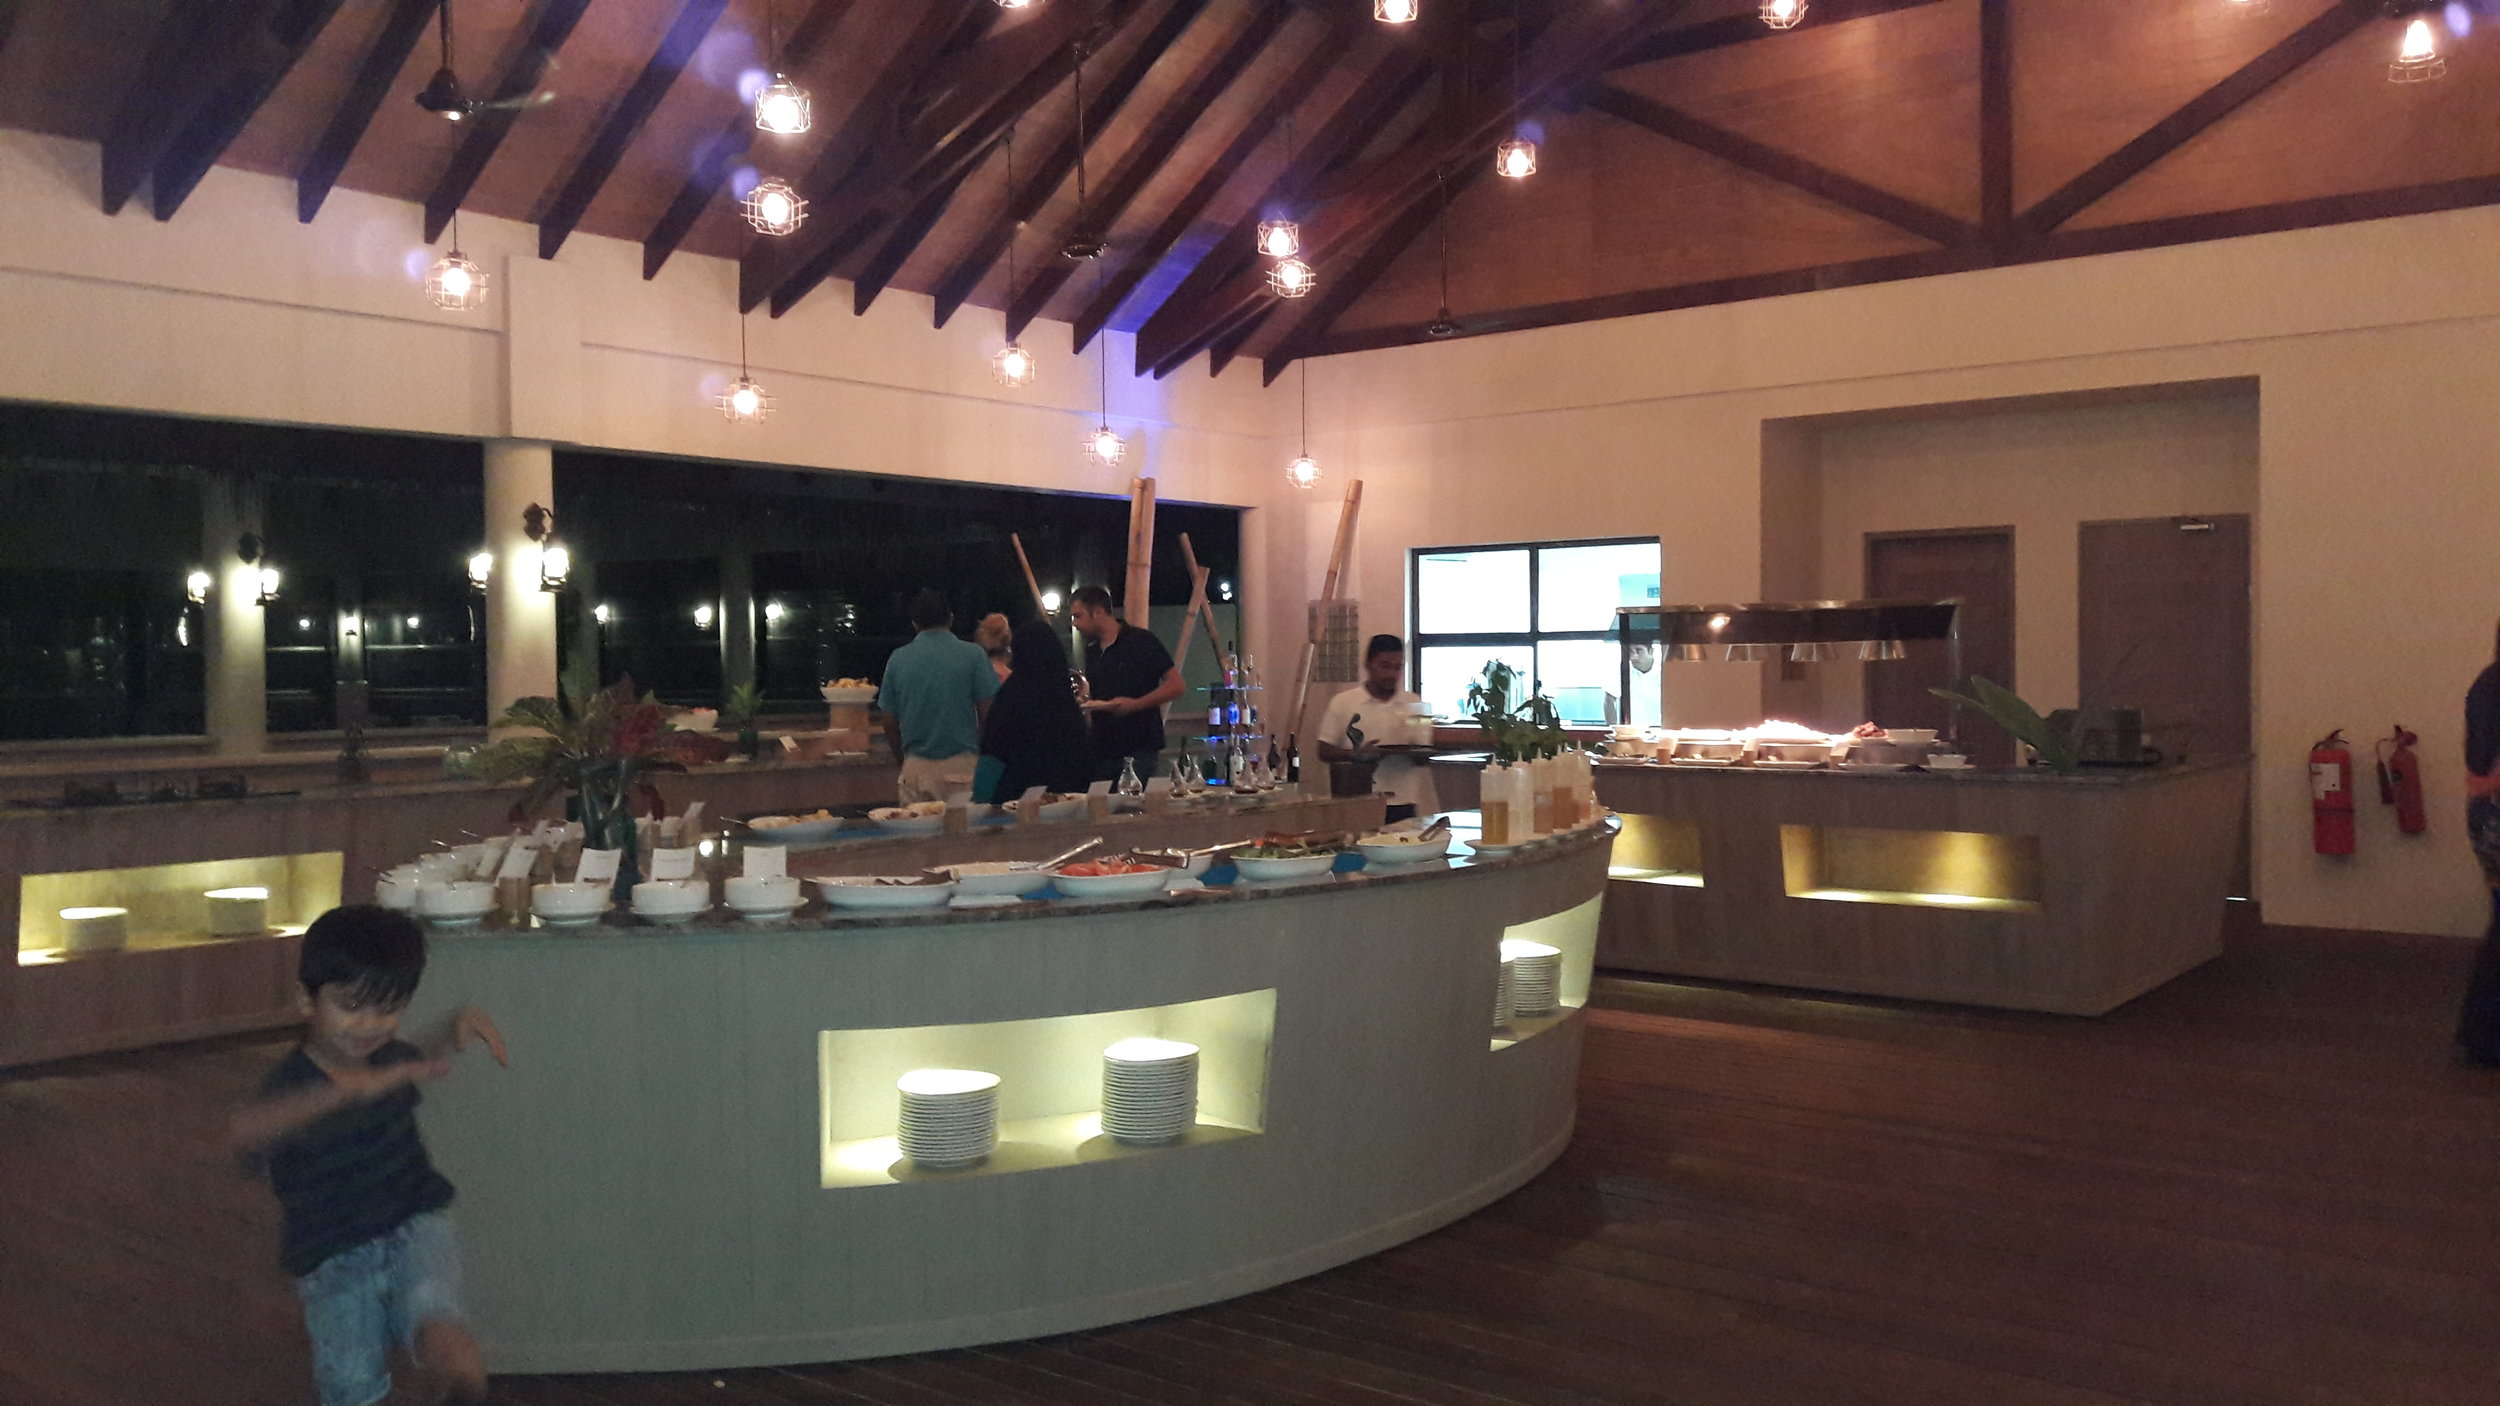 The Buffet area and right at the center is pickle and salad counter